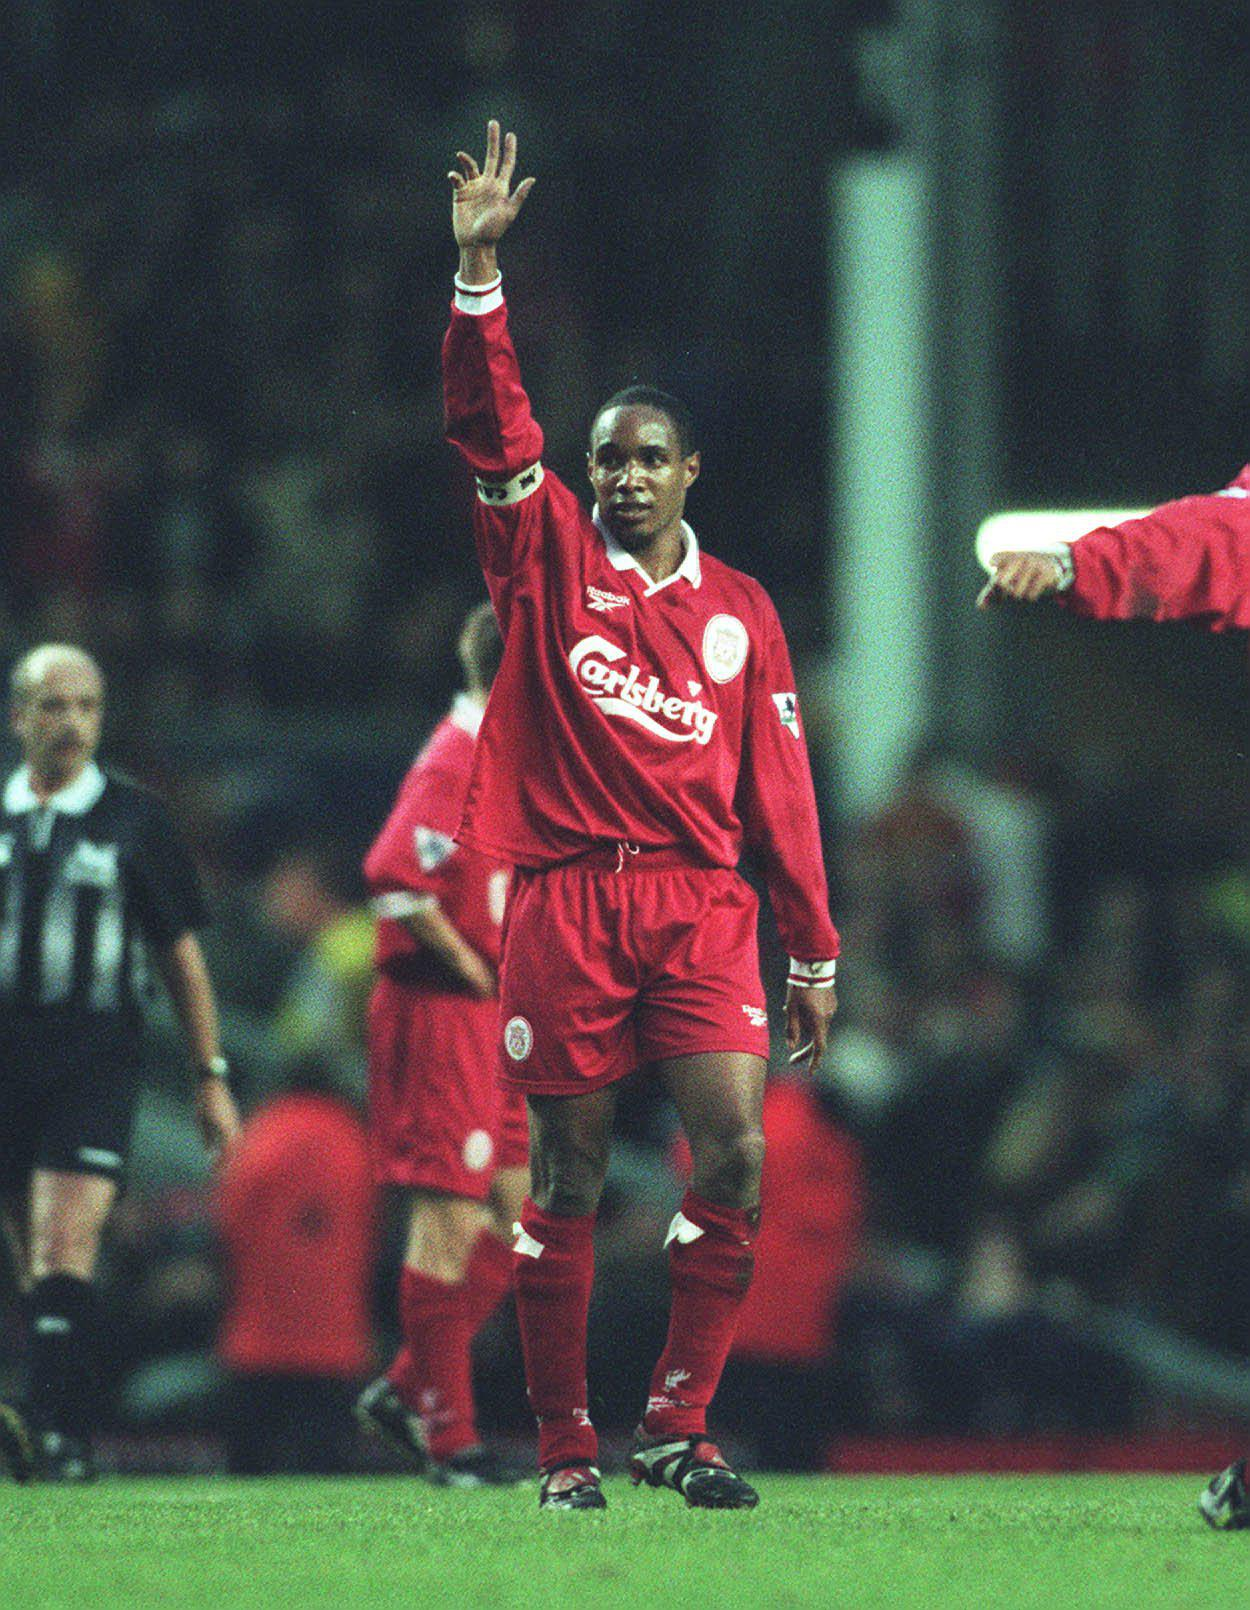 Ince captained Liverpool in the late 90s